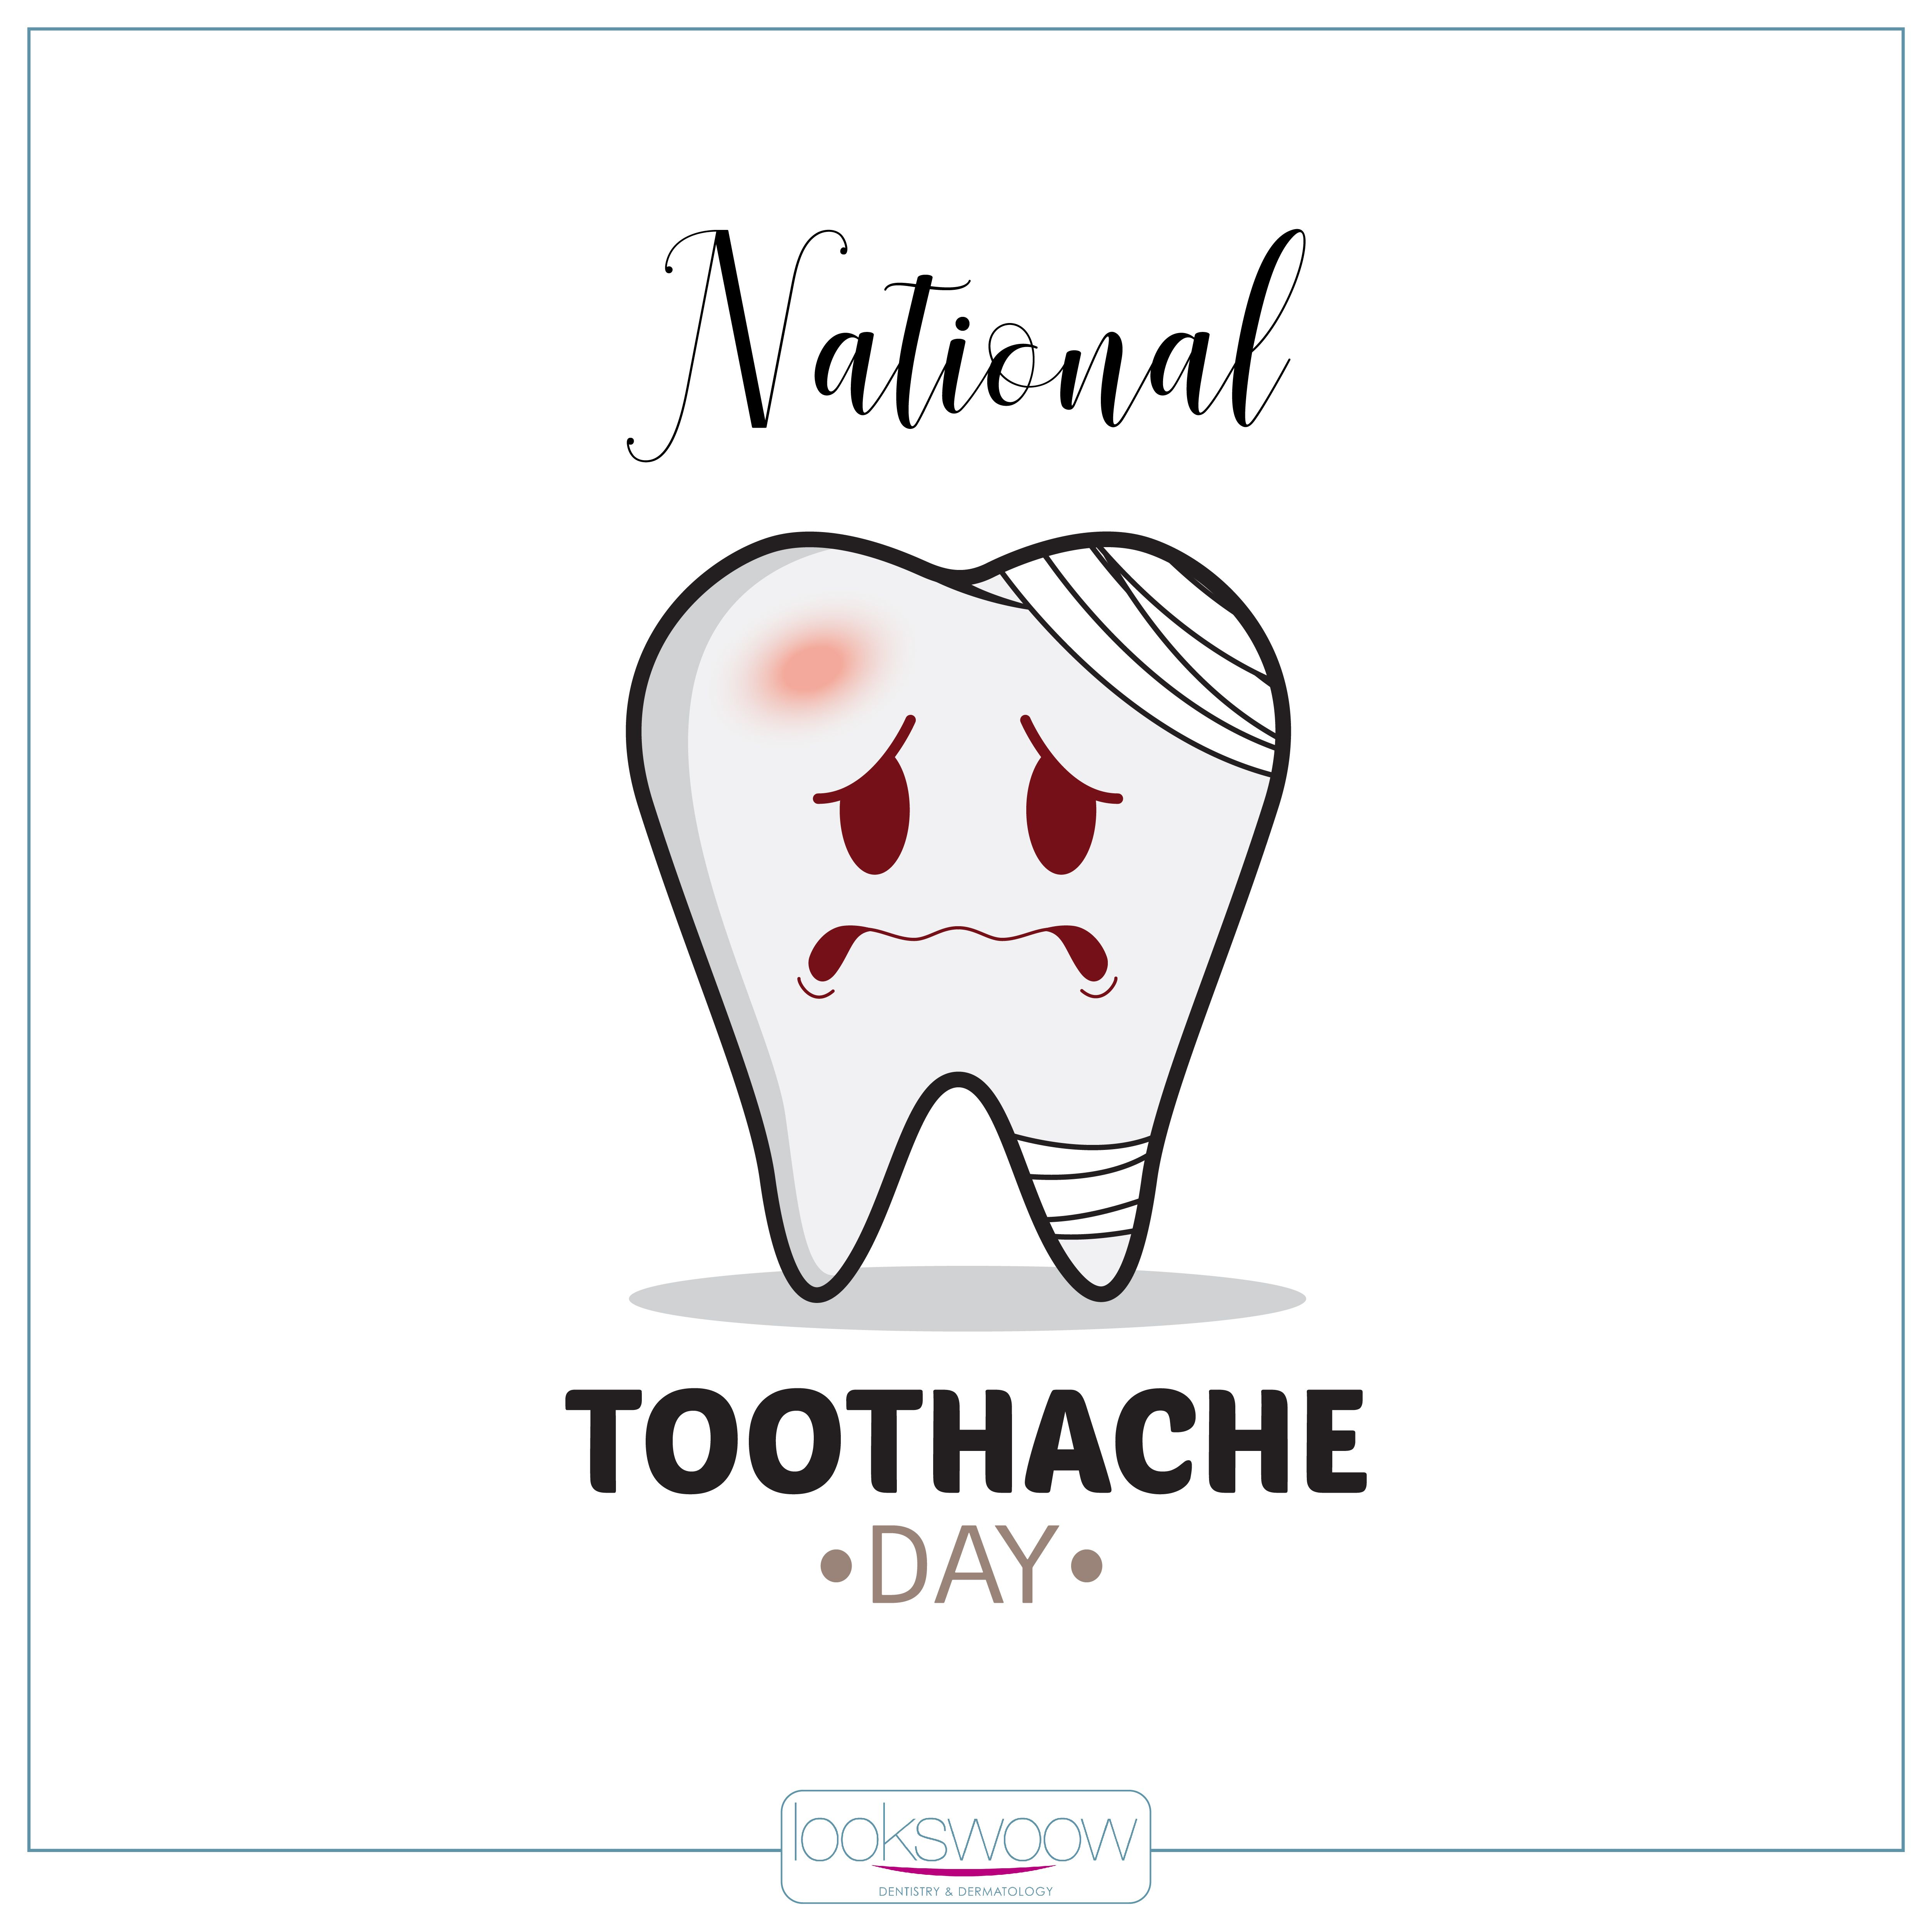 Of all the awareness days, National Toothache Day has to